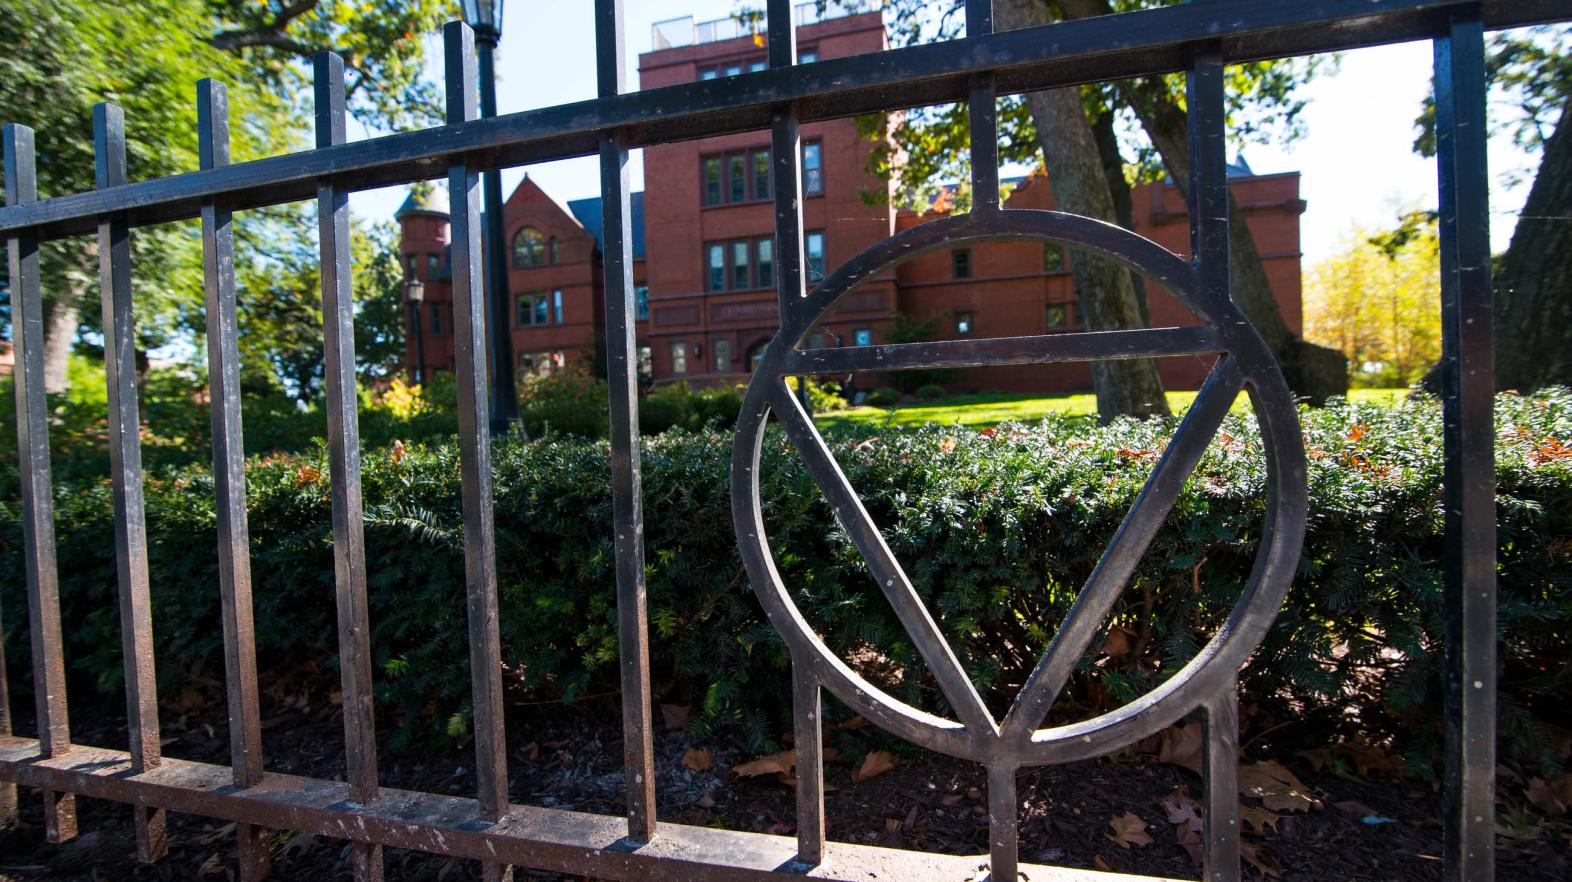 Triangle in a fence outside Judd Gymnasia.